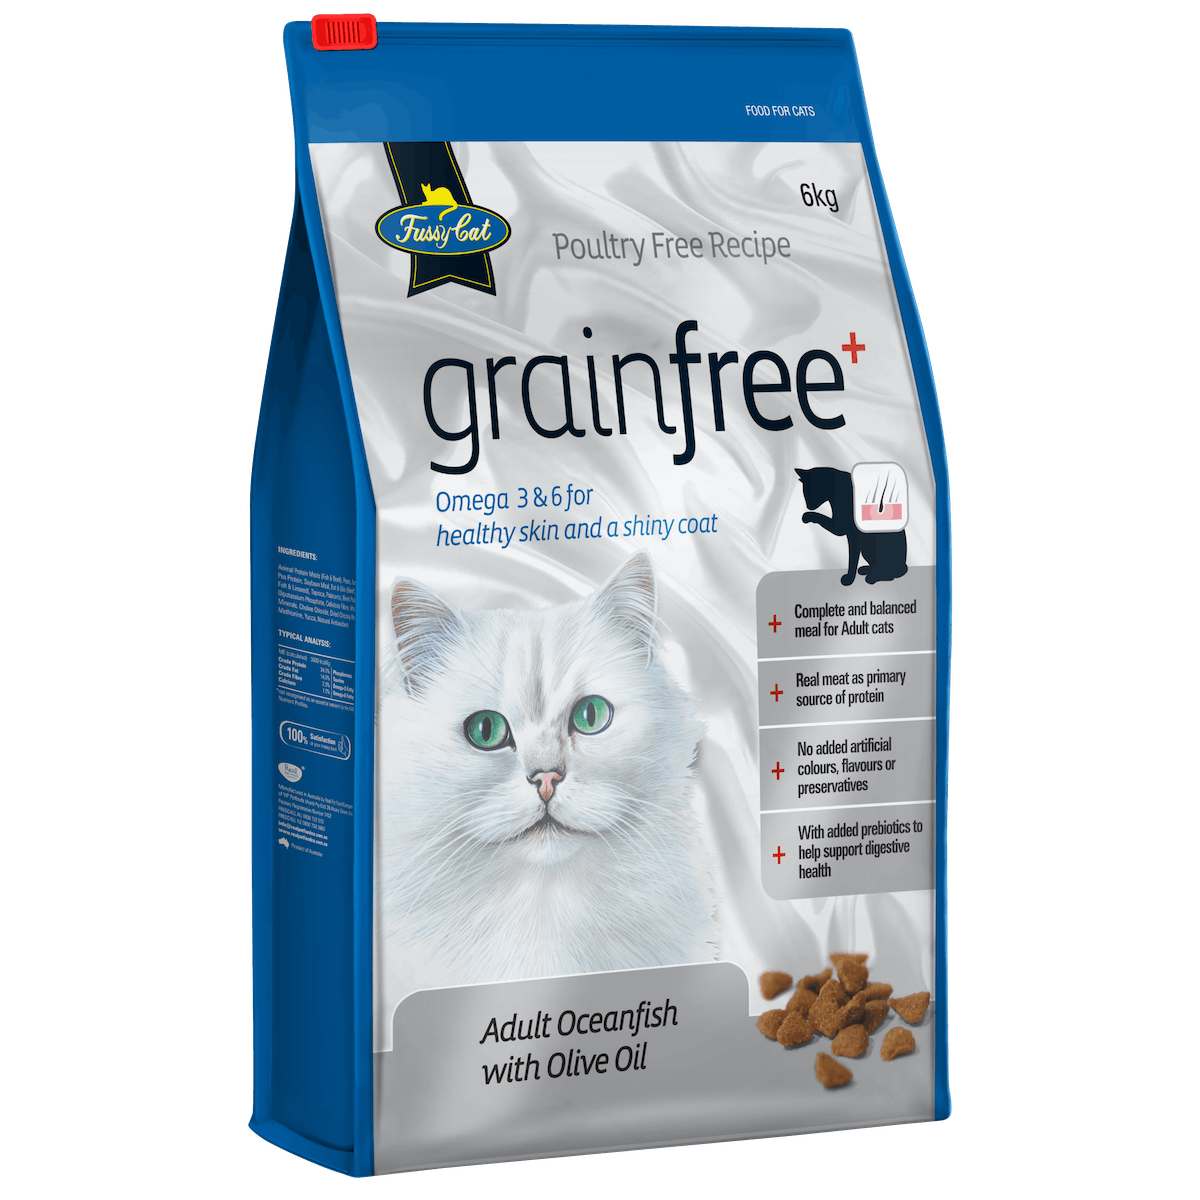 Fussy Cat | Oceanfish with Olive Oil | Dry cat food | Left of pack